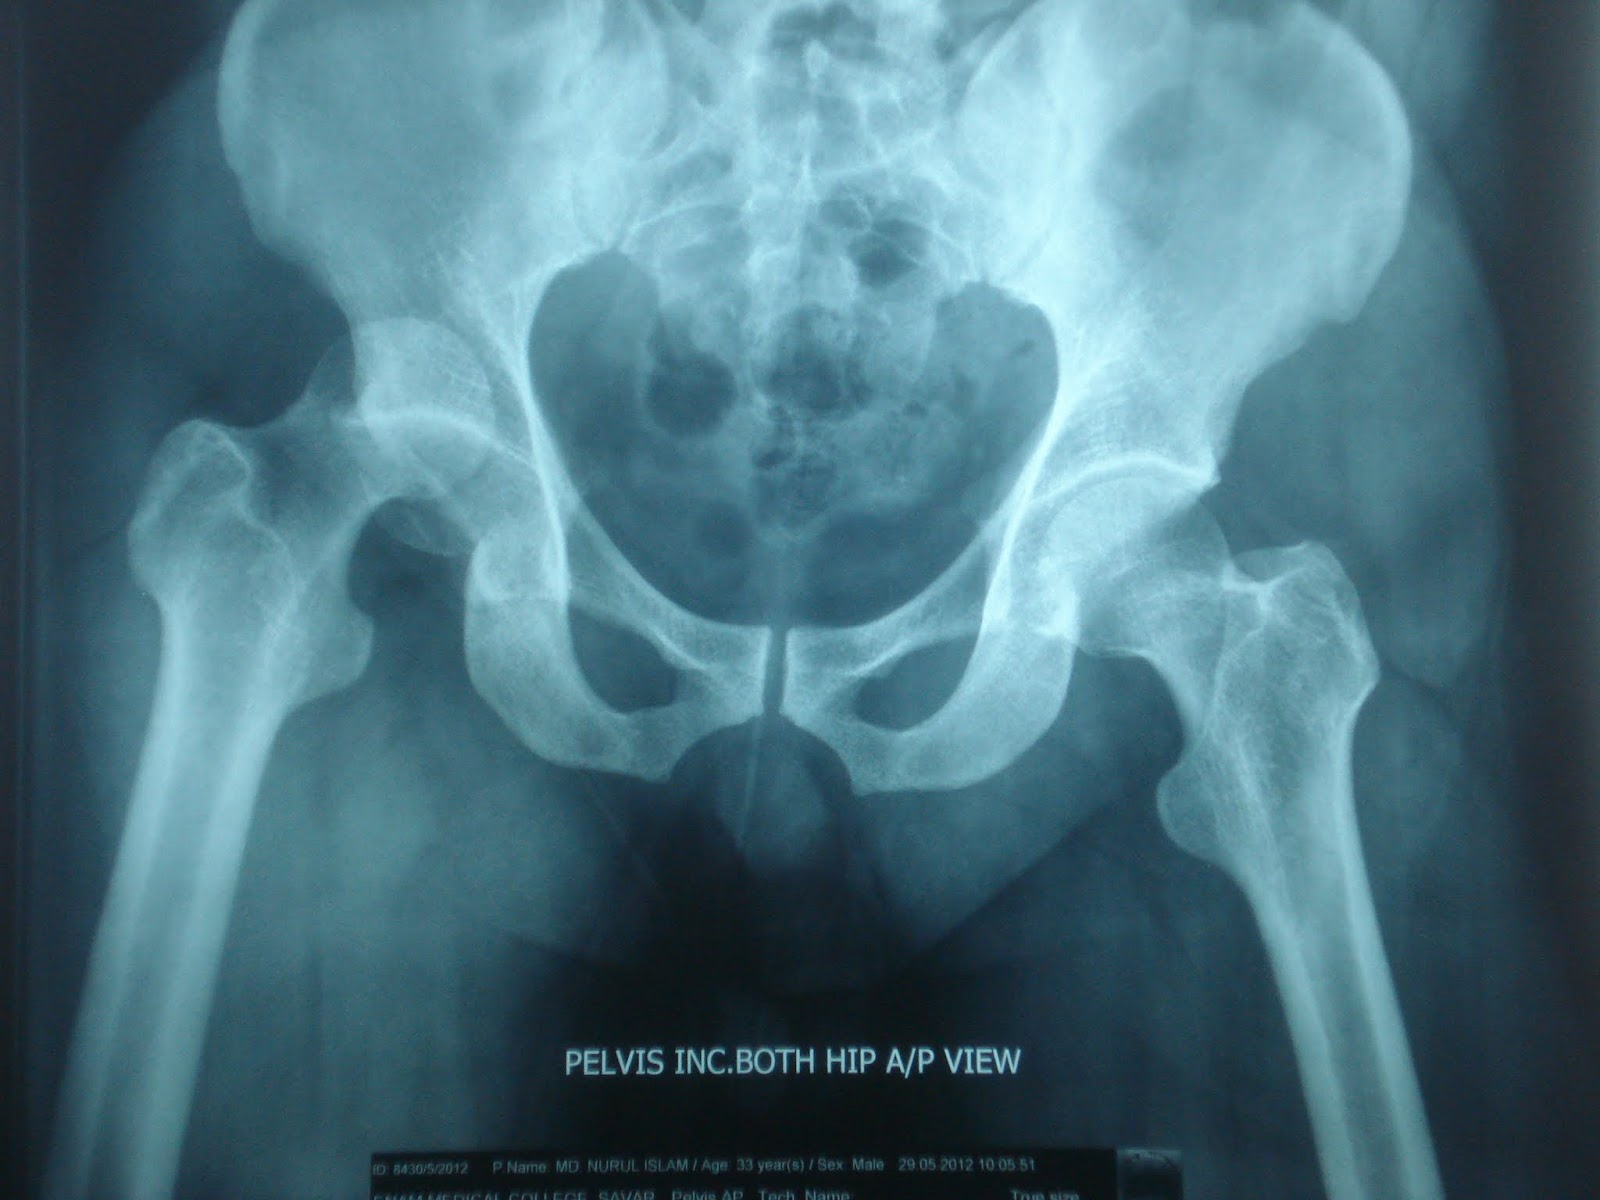 Posterior dislocation of right hip of a middle aged man from RTA.-2.bp.blogspot.com